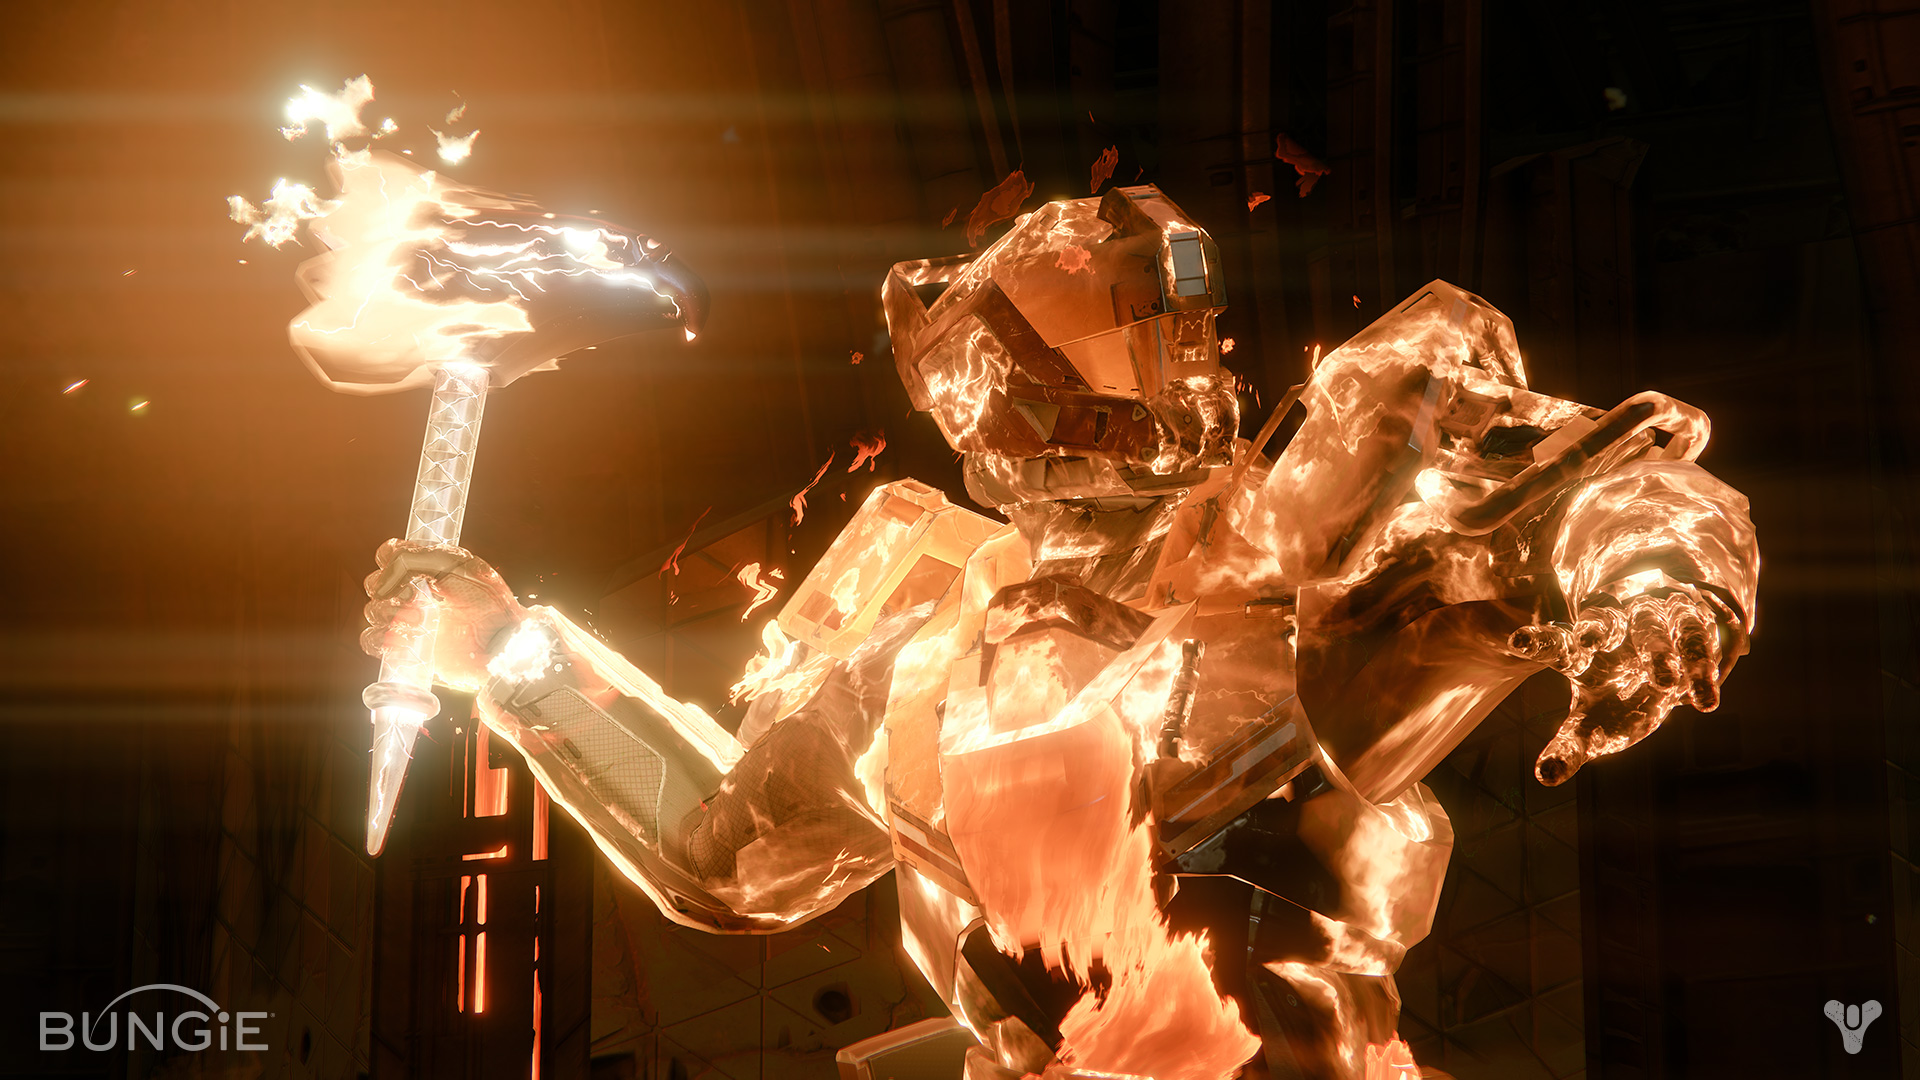 Destinys Age Of Triumph Brings Back Both The Raids And Memories